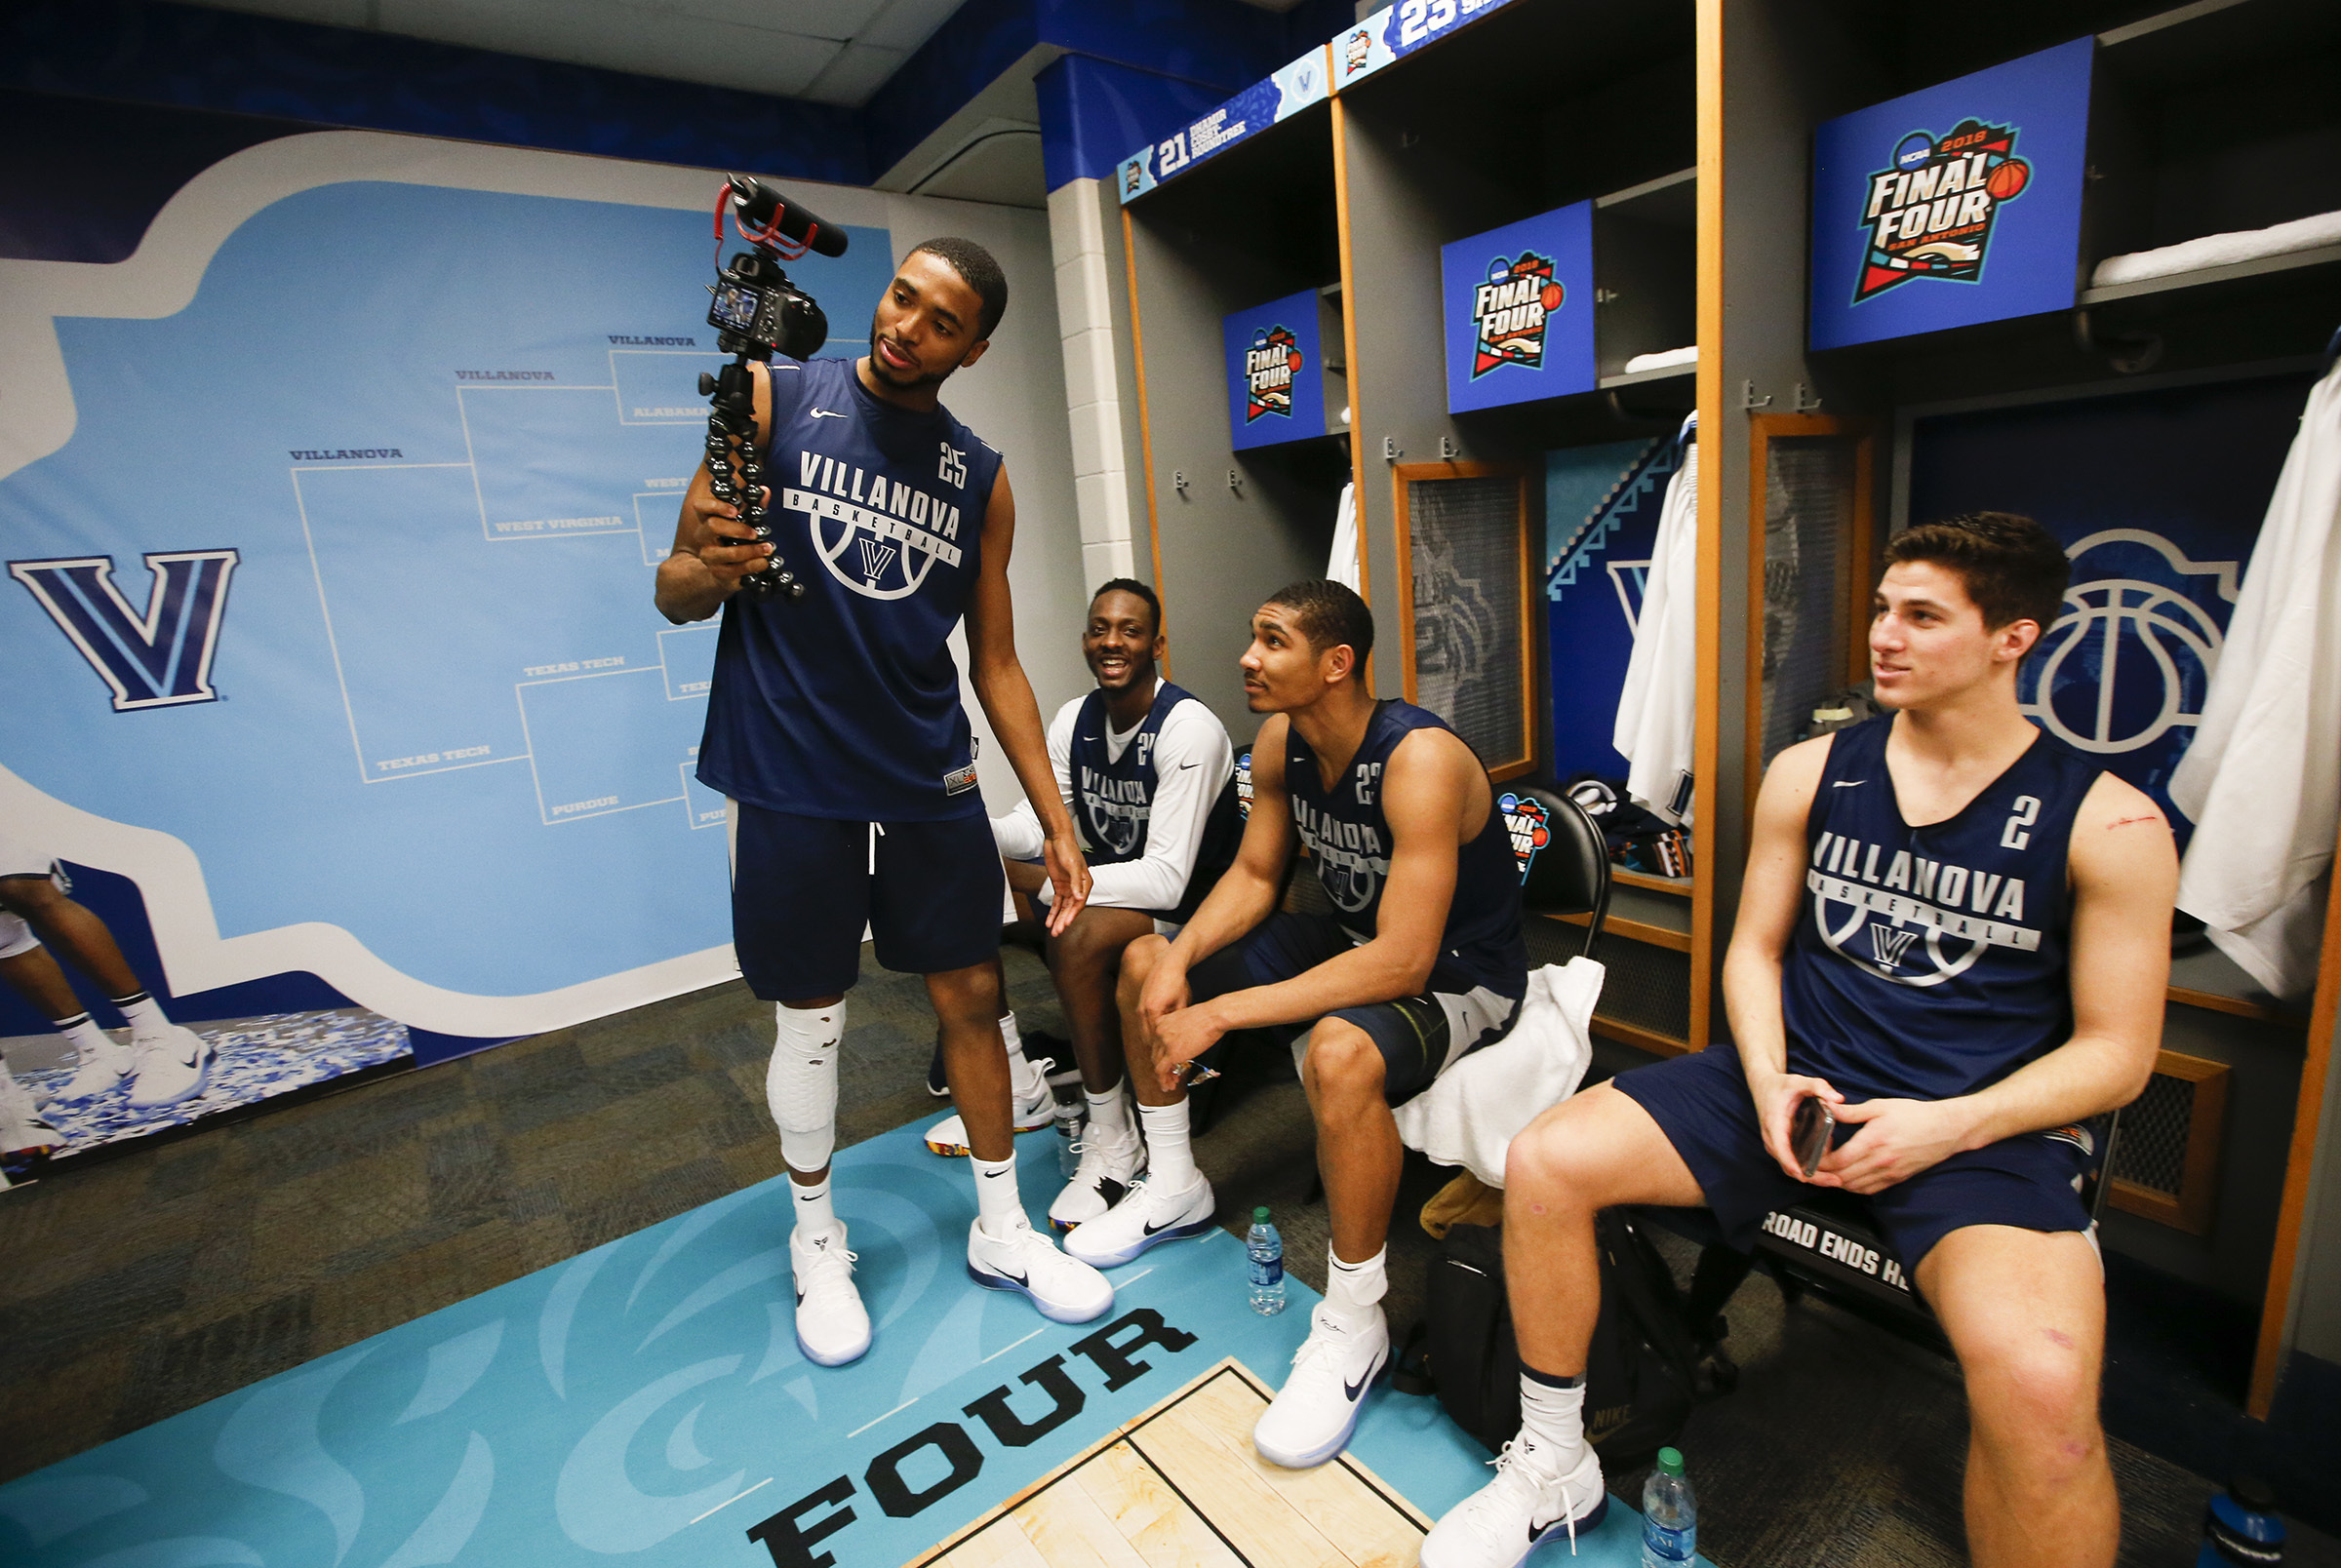 Villanova forward/guard Mikal Bridges uses a video camera to record a piece for the NCAA with teammates forward Dhamir Cosby-Roundtree, forward Jermaine Samuels and guard Collin Gillespie during a media availability after the team practiced on Thursday, March 29, 2018 at the Alamodome in San Antonio.